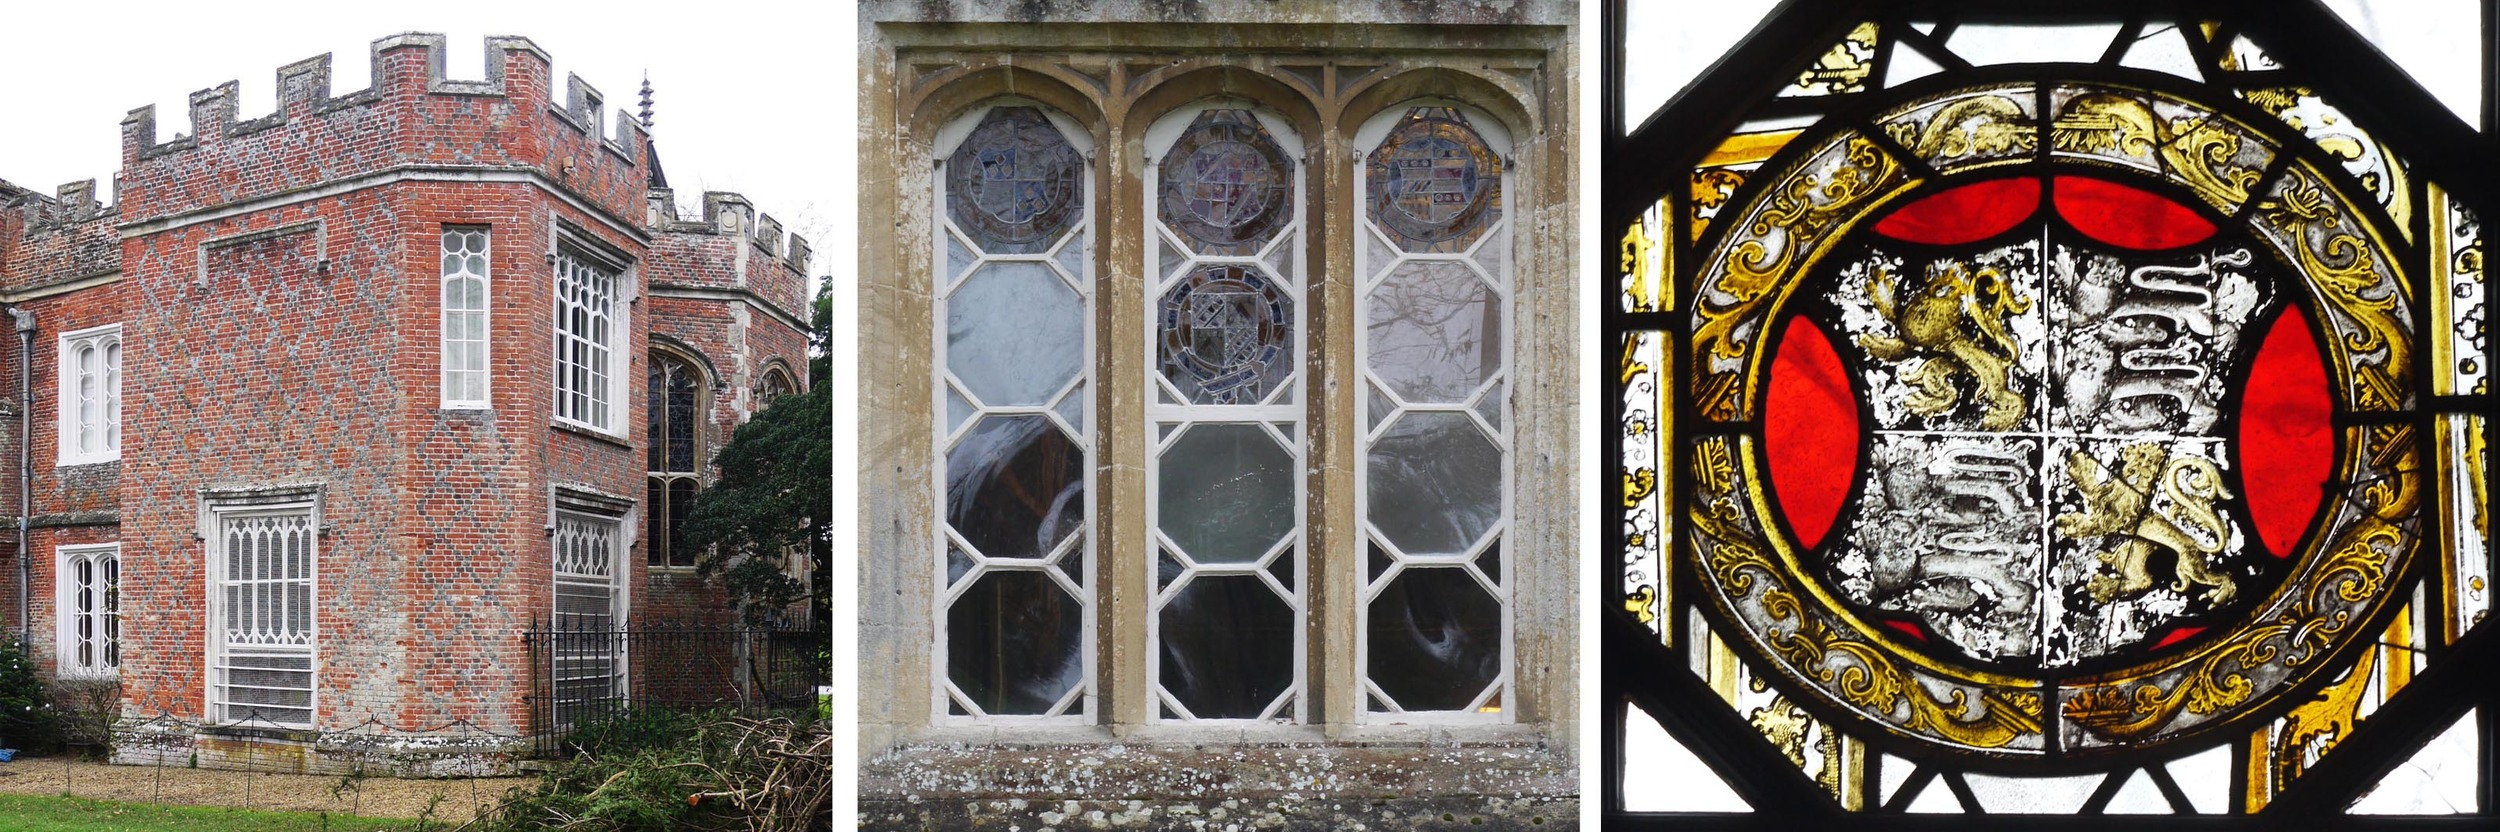 The Vyne (NT, near Basingstoke) and some of its heraldic glass